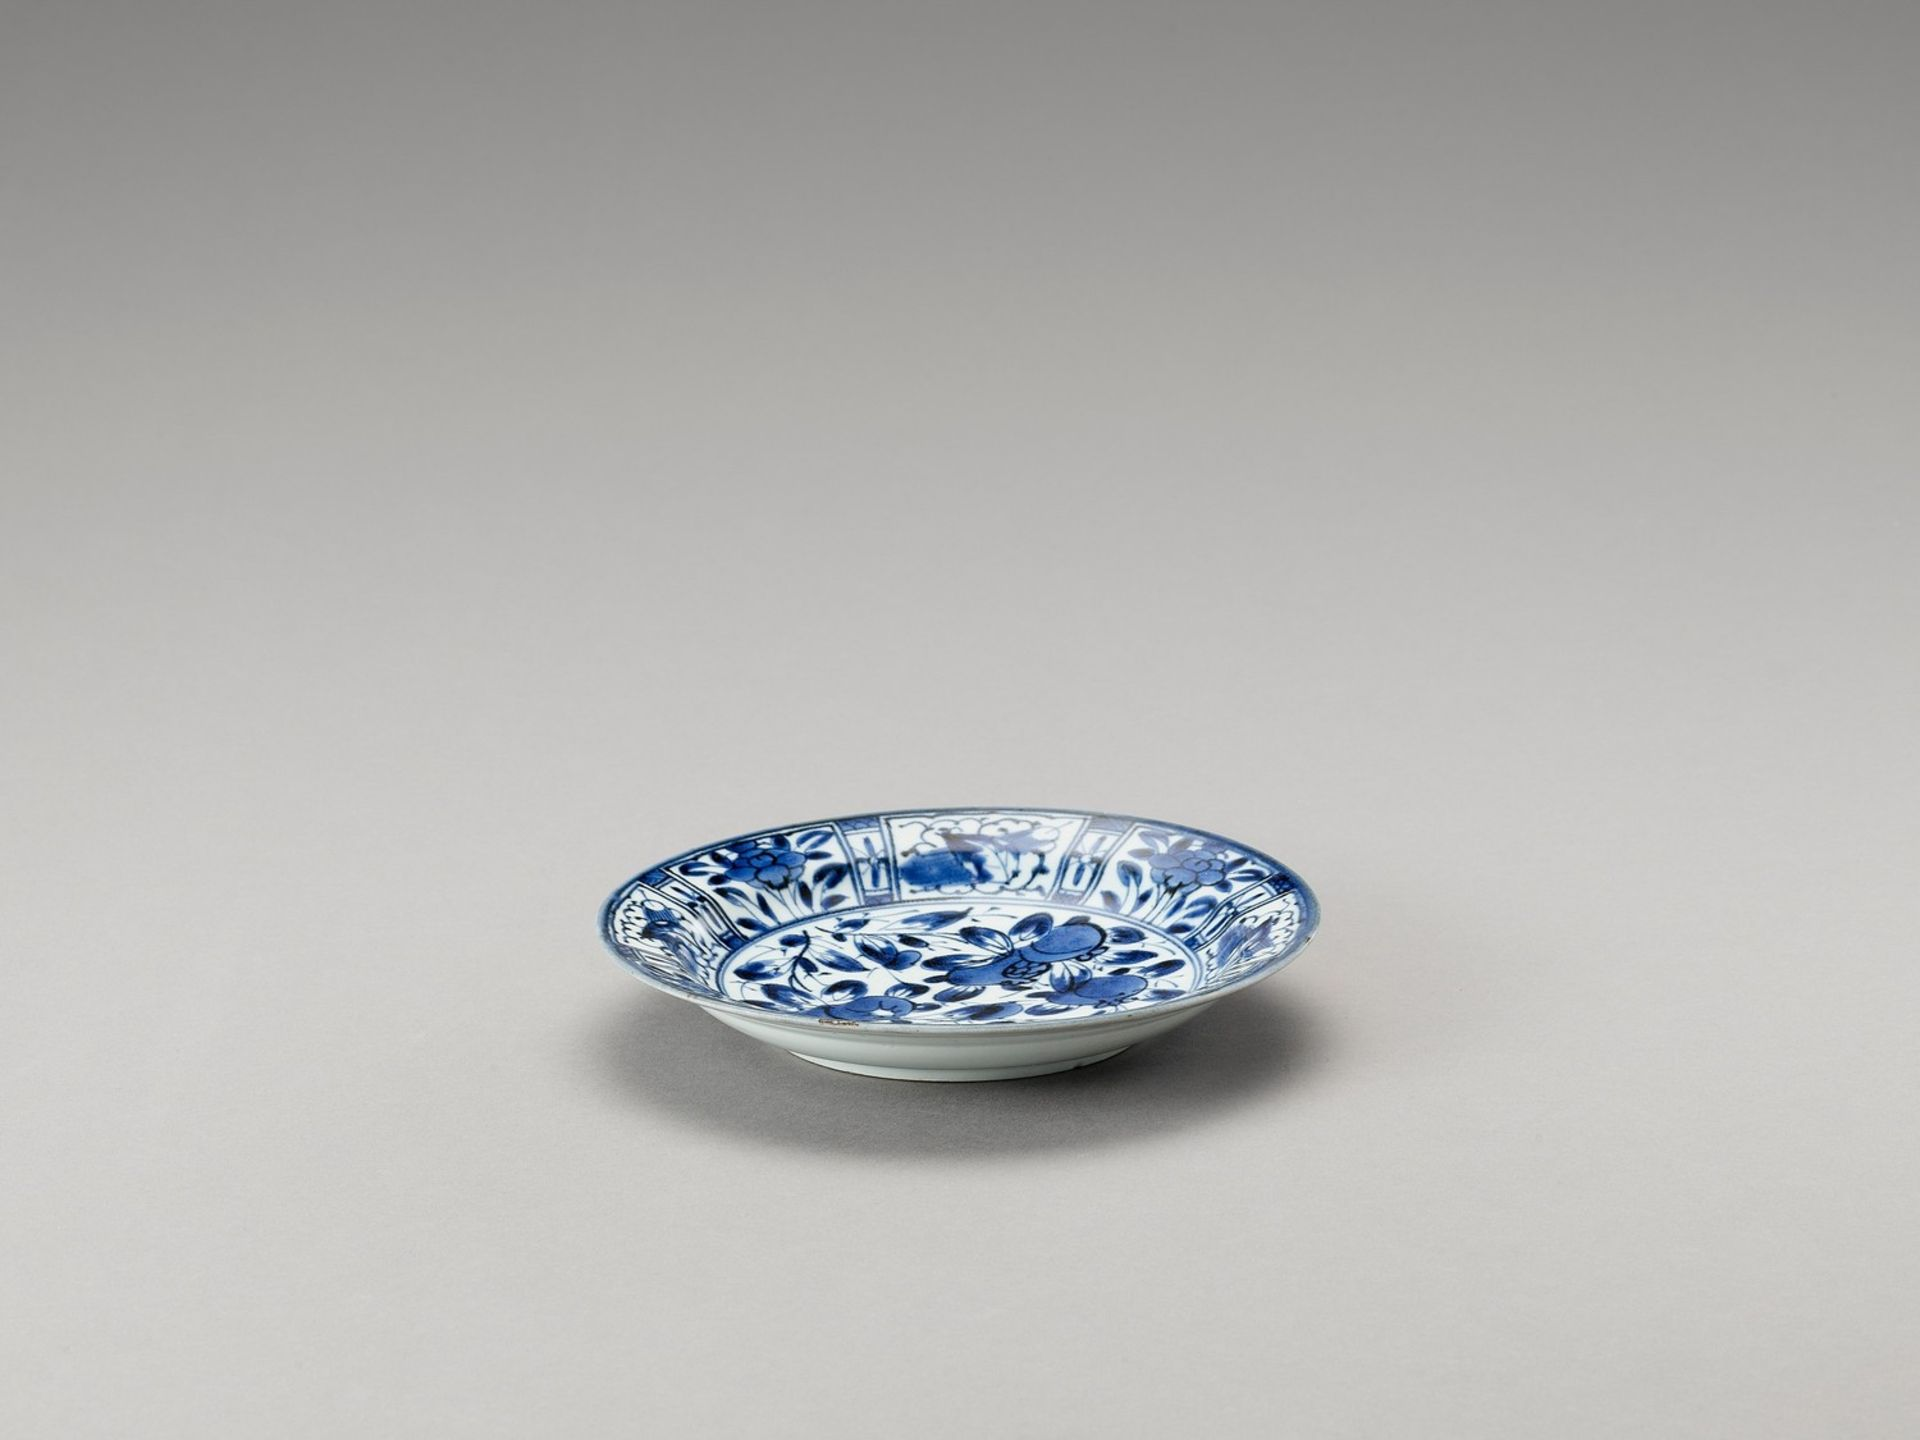 A BLUE AND WHITE 'FLORAL' PORCELAIN DISH - Image 2 of 4